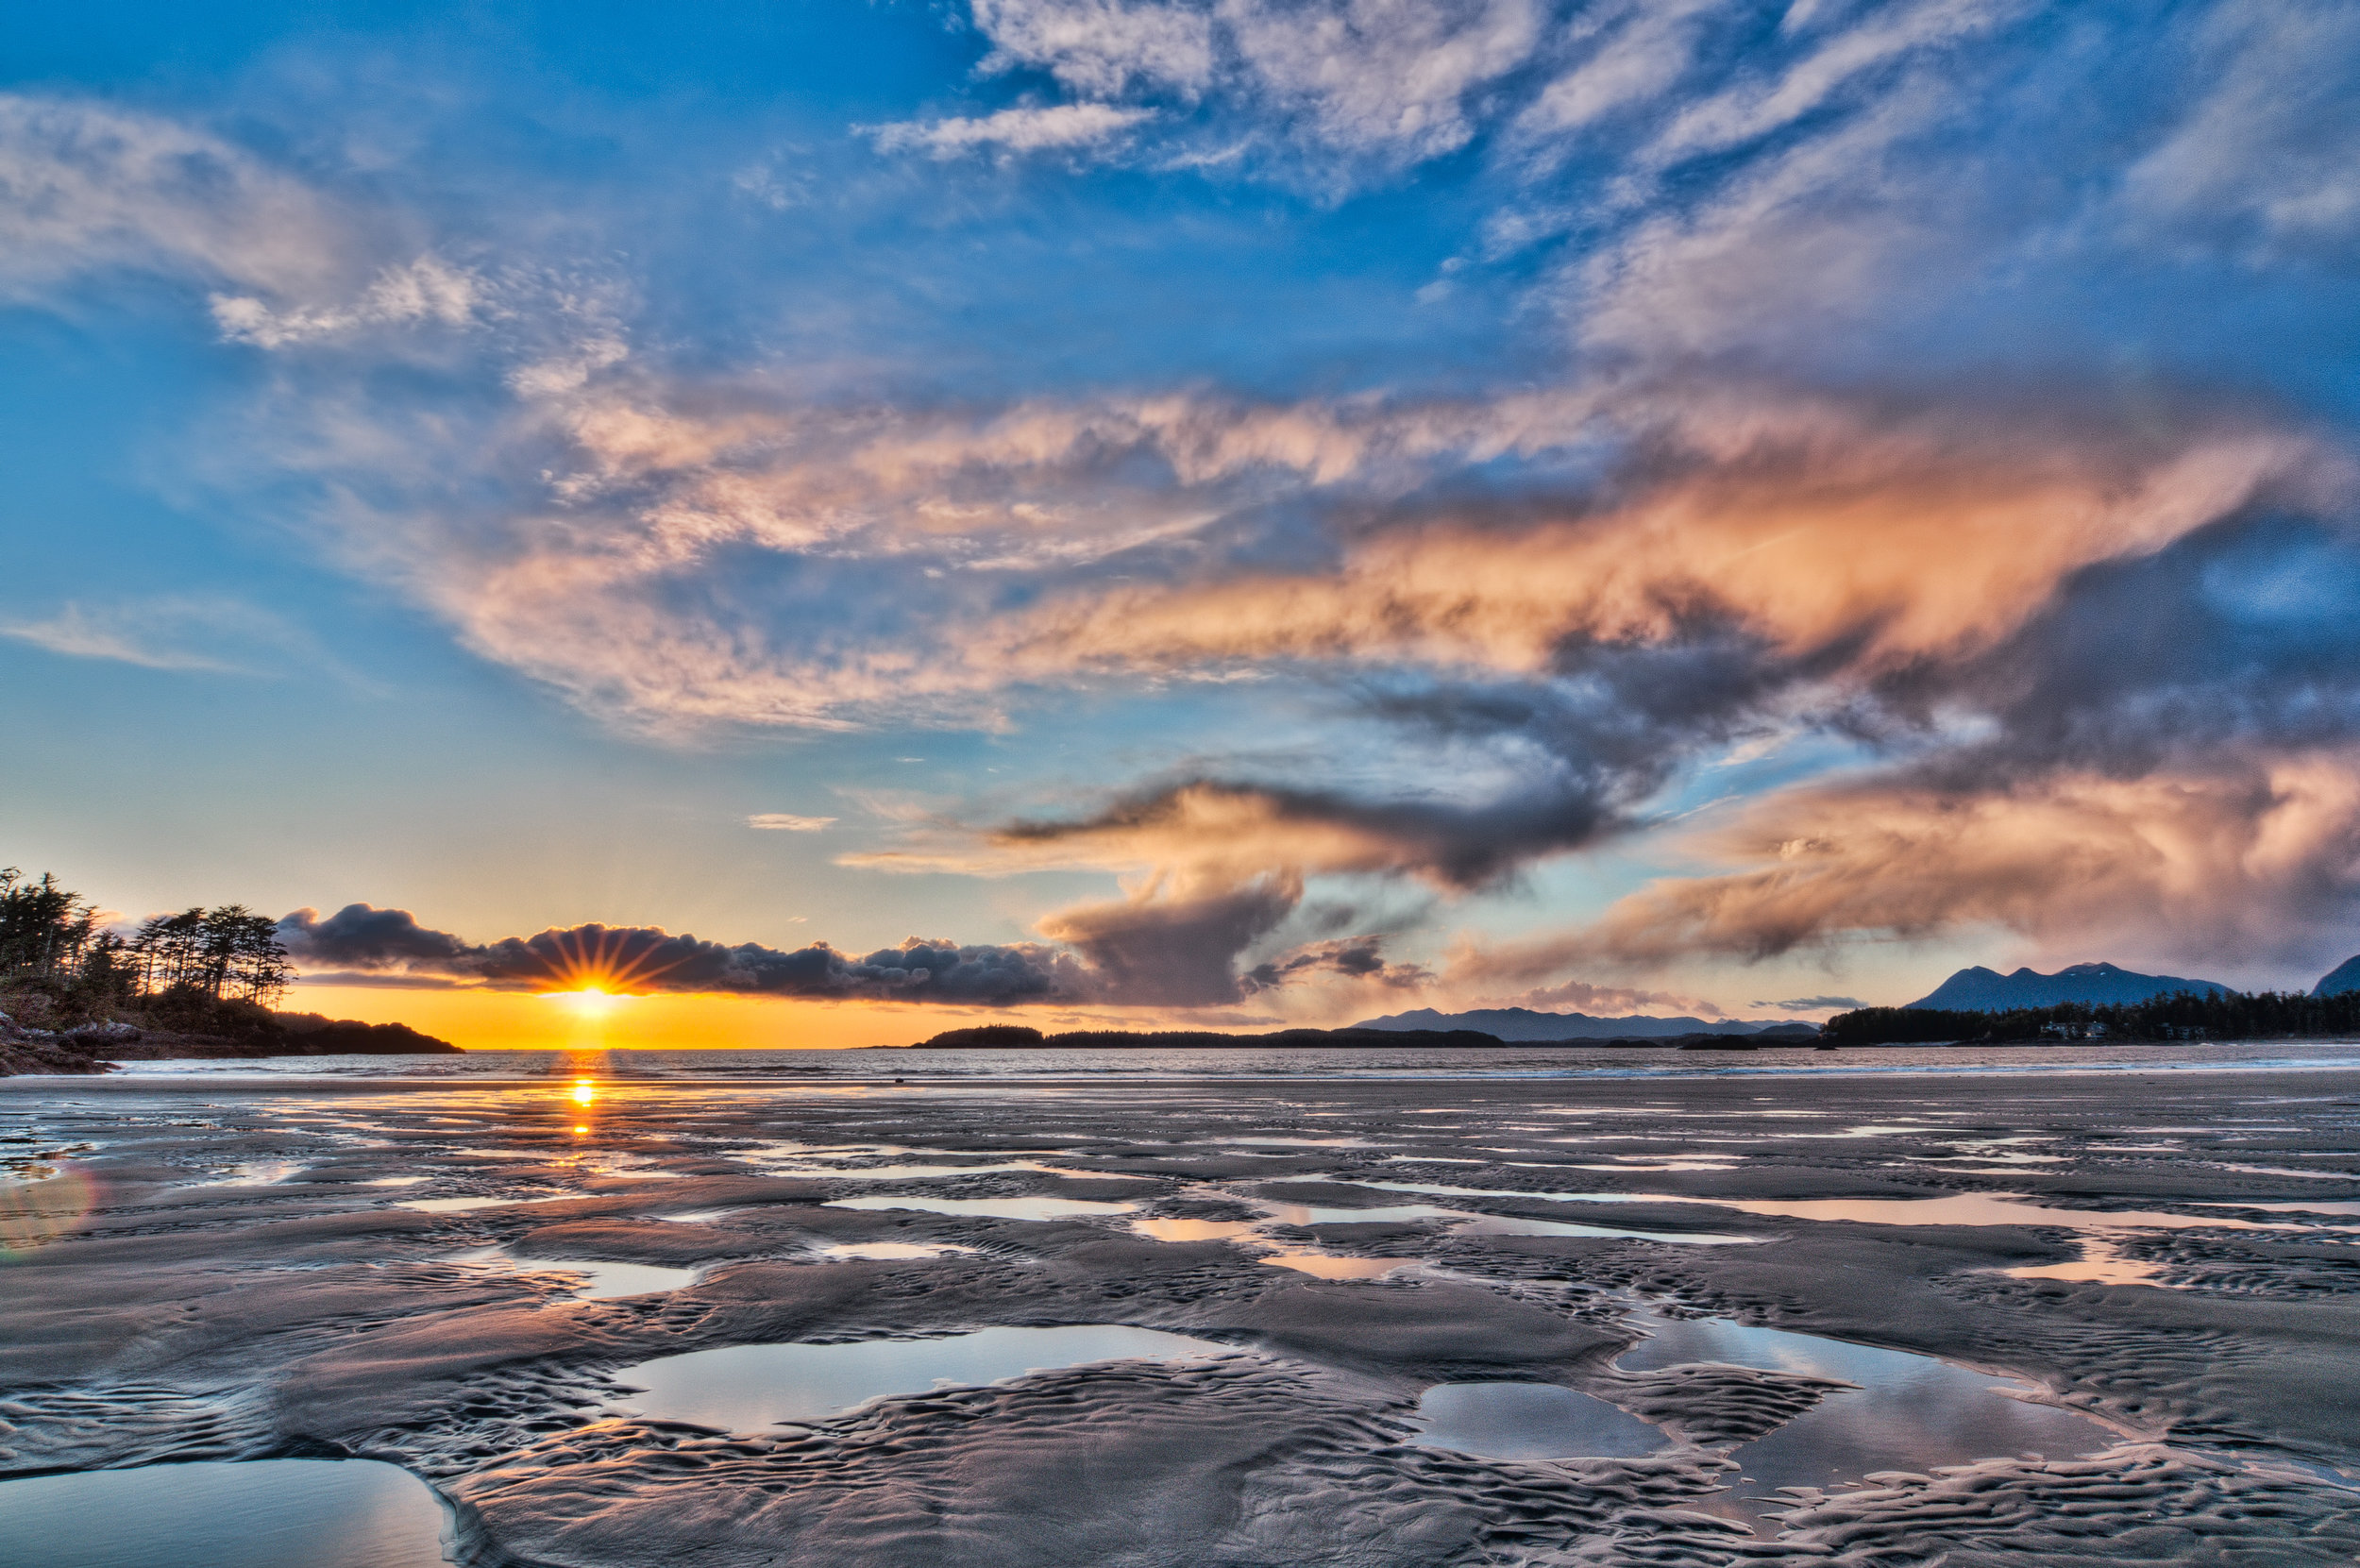 Sunset on Vancouver Island guided tour.